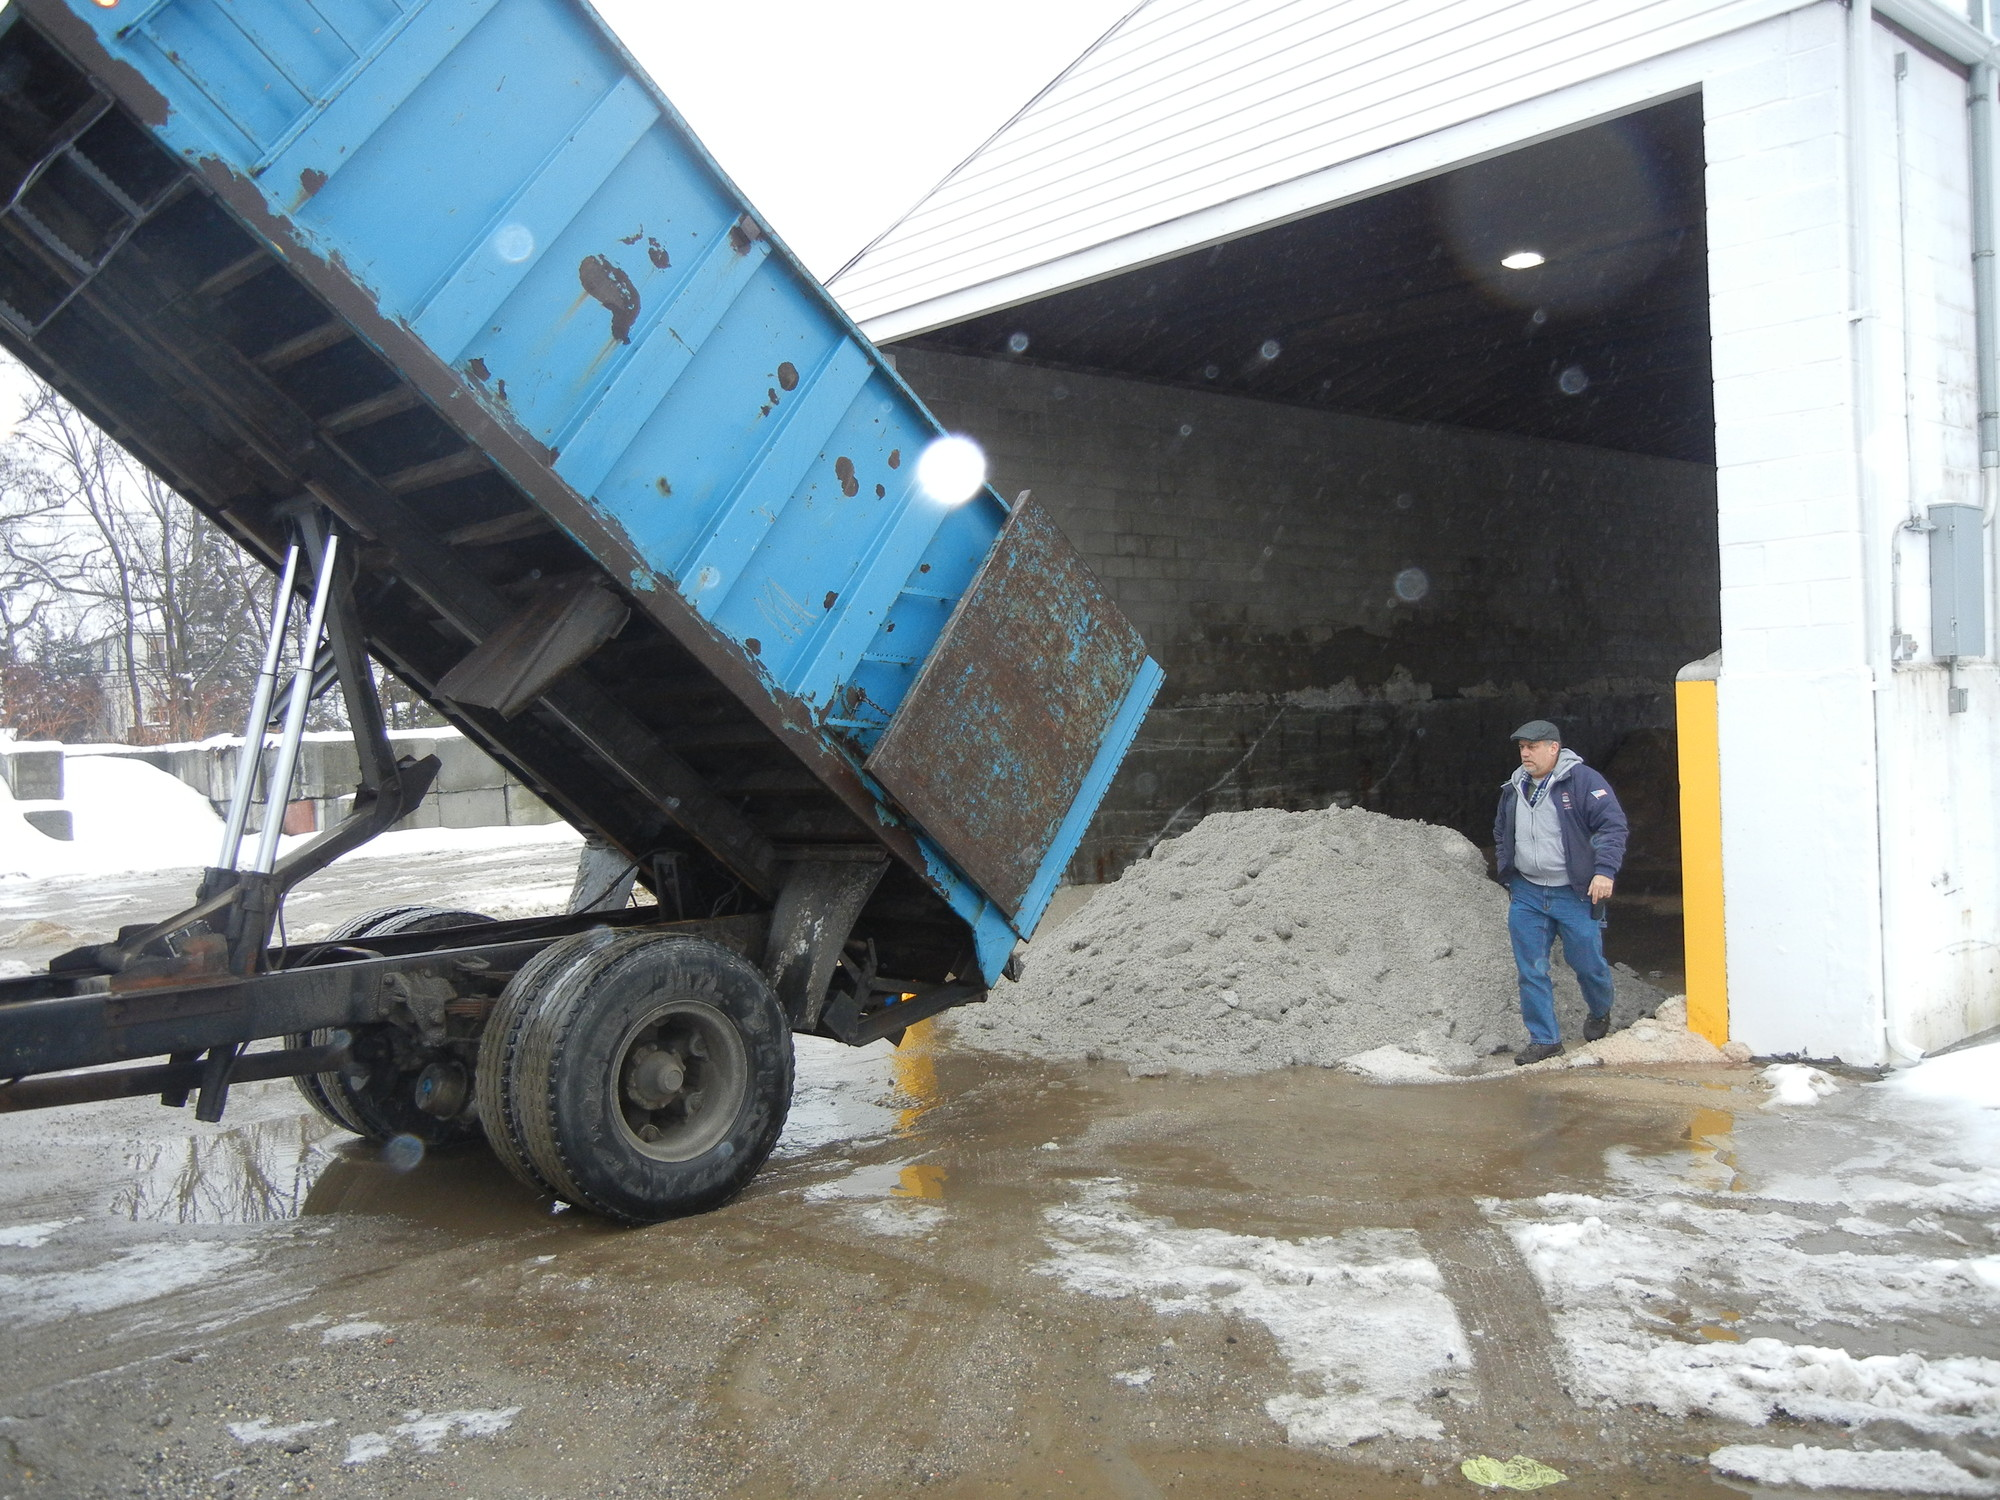 The village recently received an emergency salt delivery from Nassau County after its supply ran low.